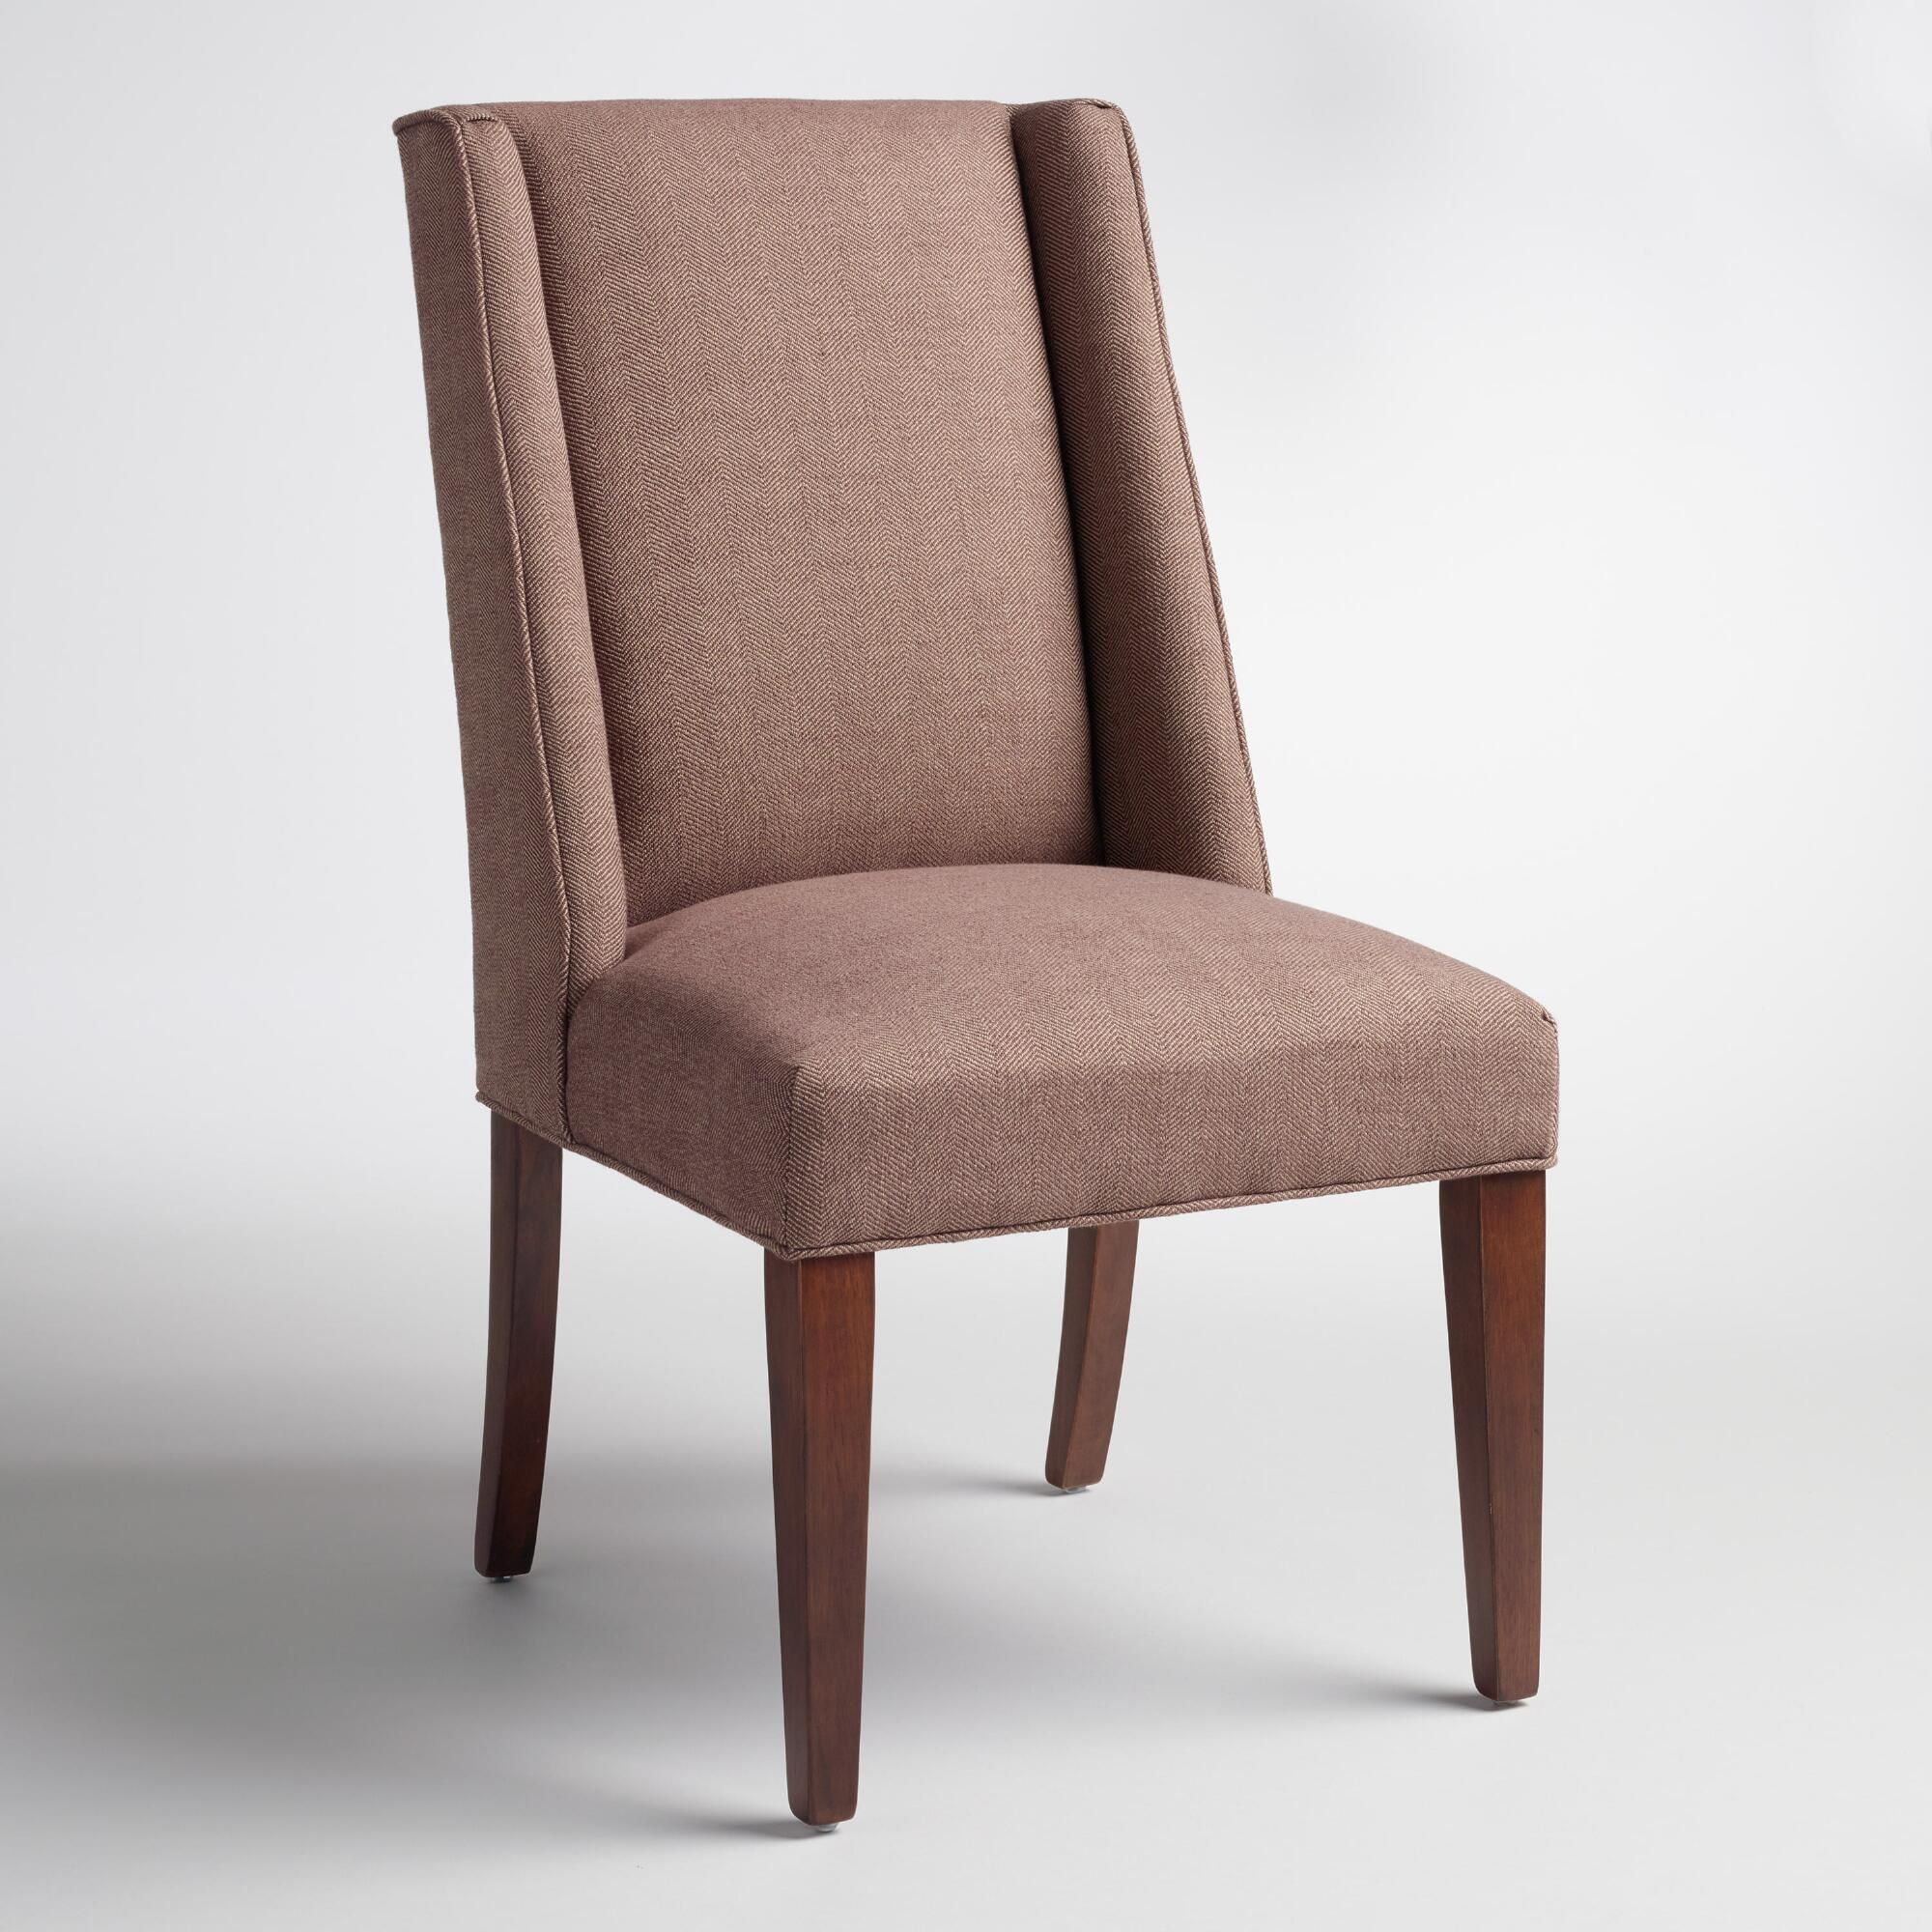 Covered in rich cocoa brown herringbone fabric our handsome side chair boasts a subtle wingback profile for a classic look